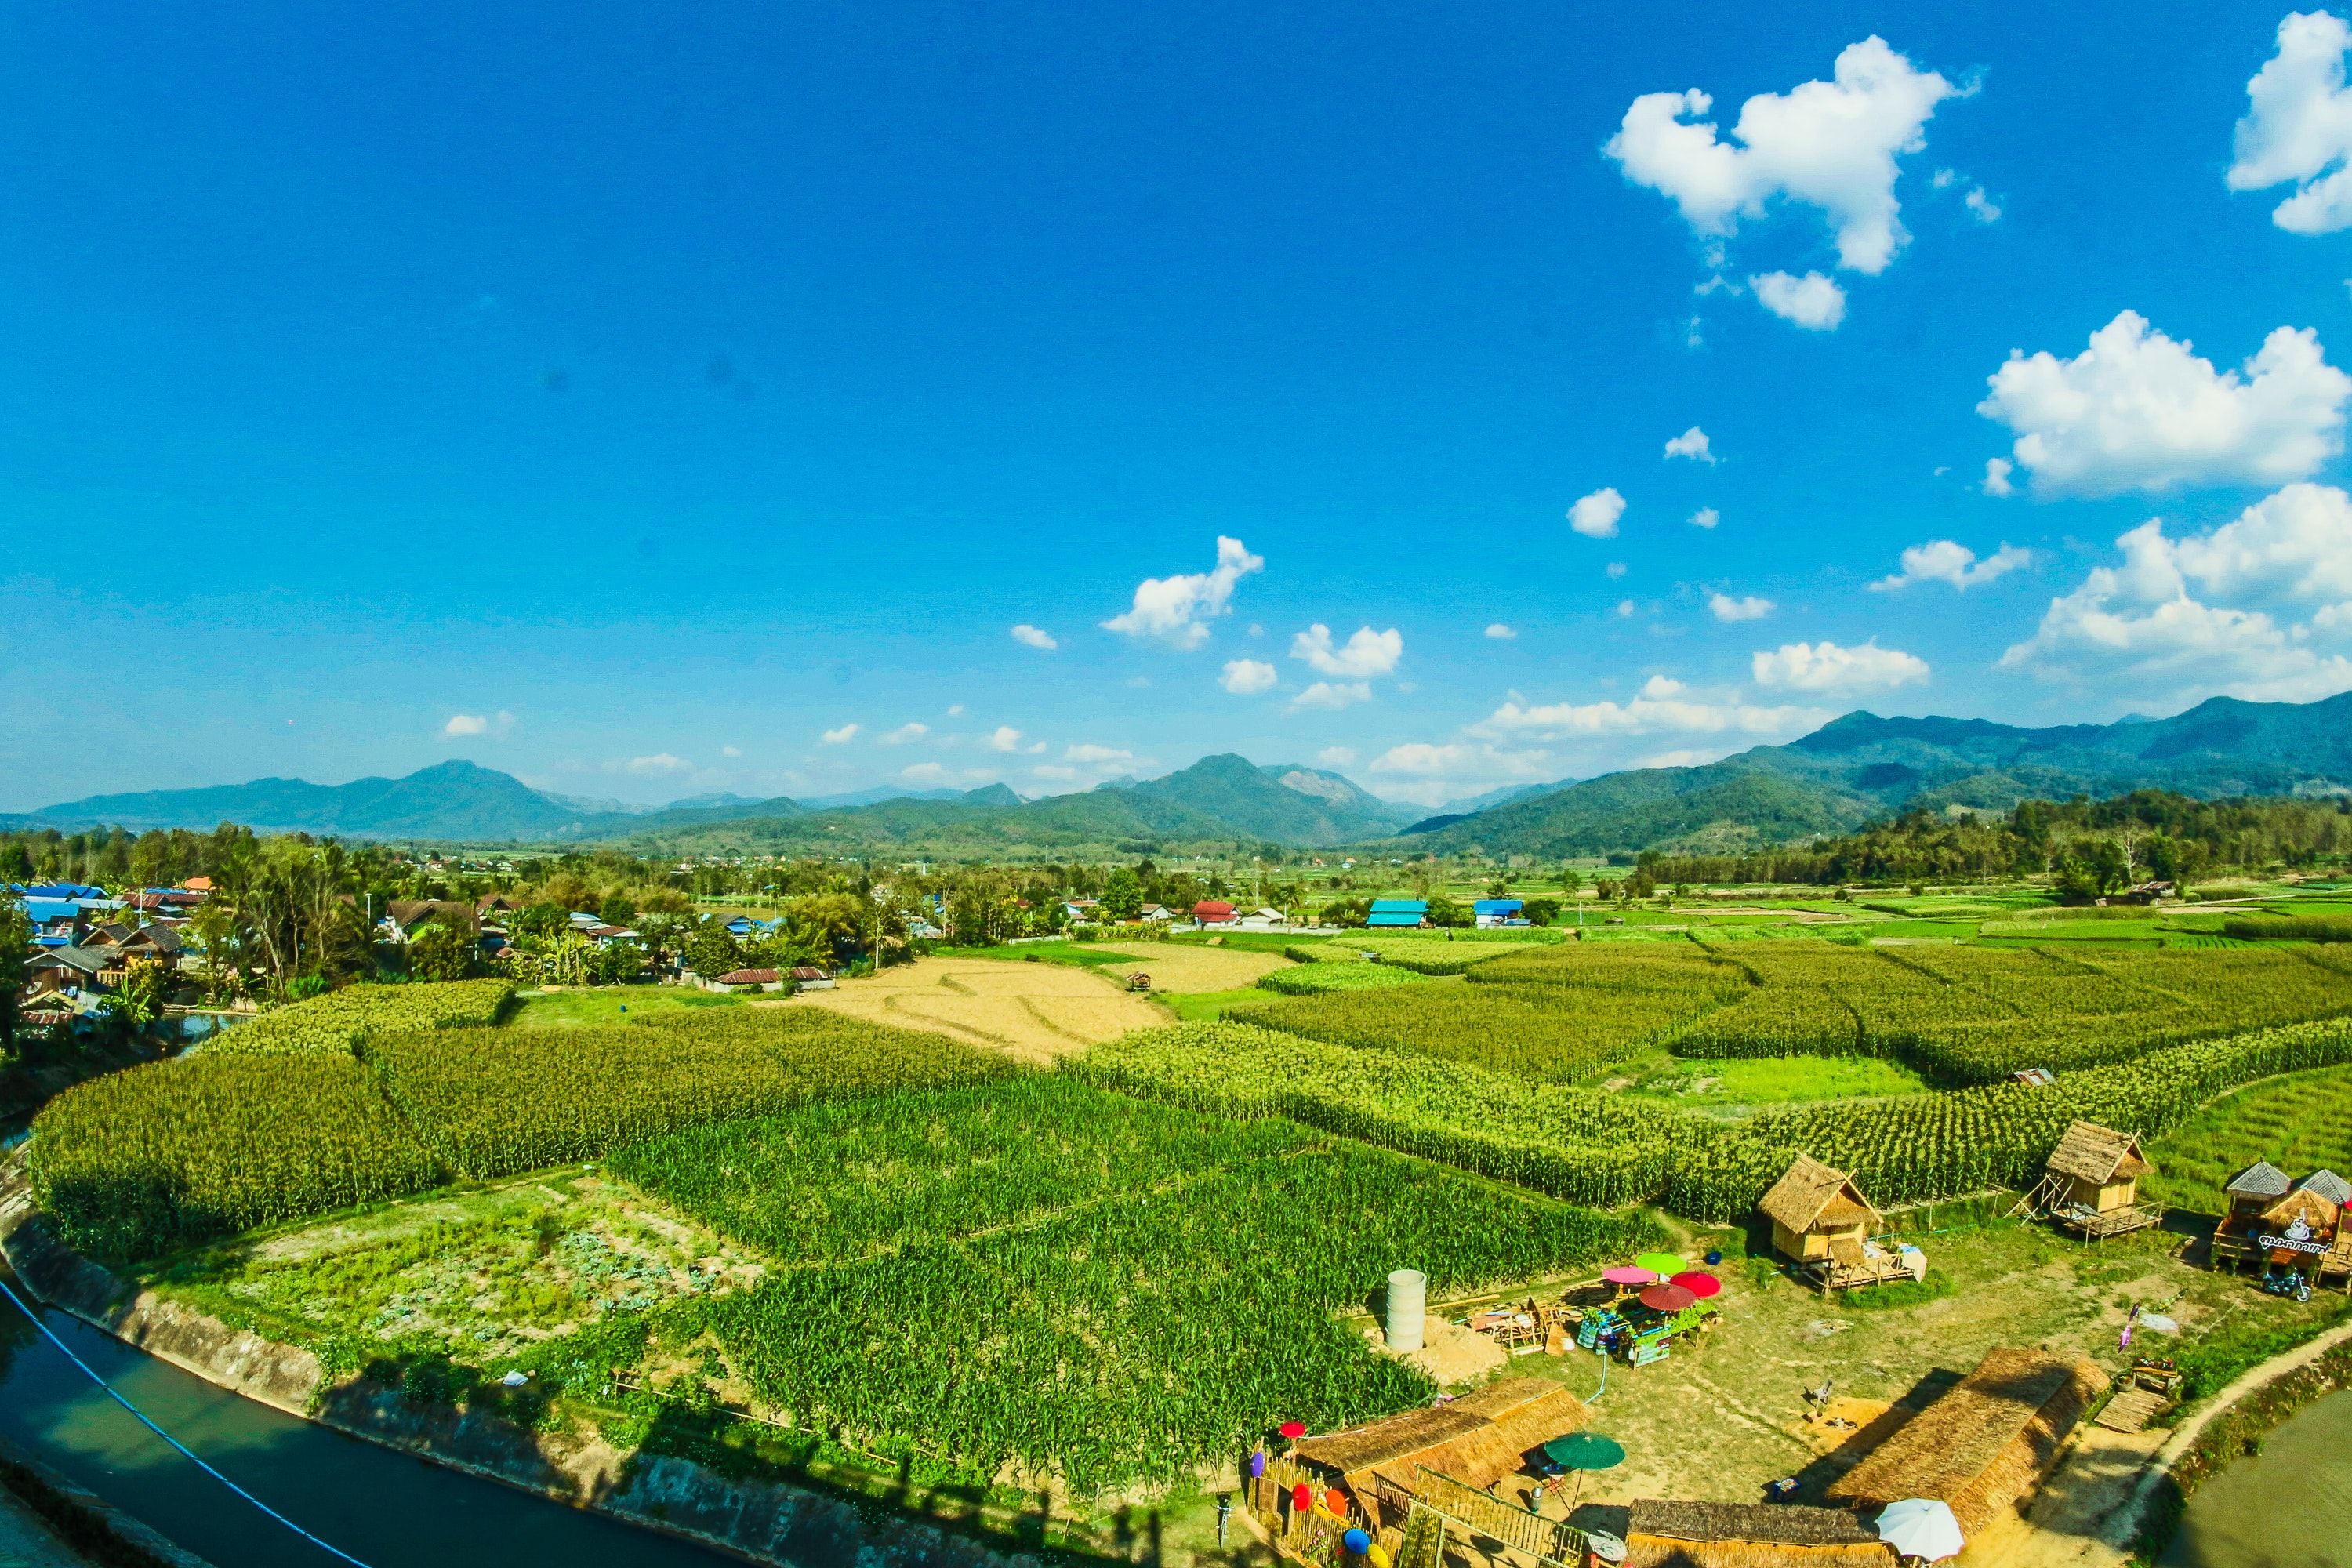 Houses Near the Rice Wheat Field Under the Clear Blue Skies, Agricultural, Rice, Meadow, Mountains, HQ Photo